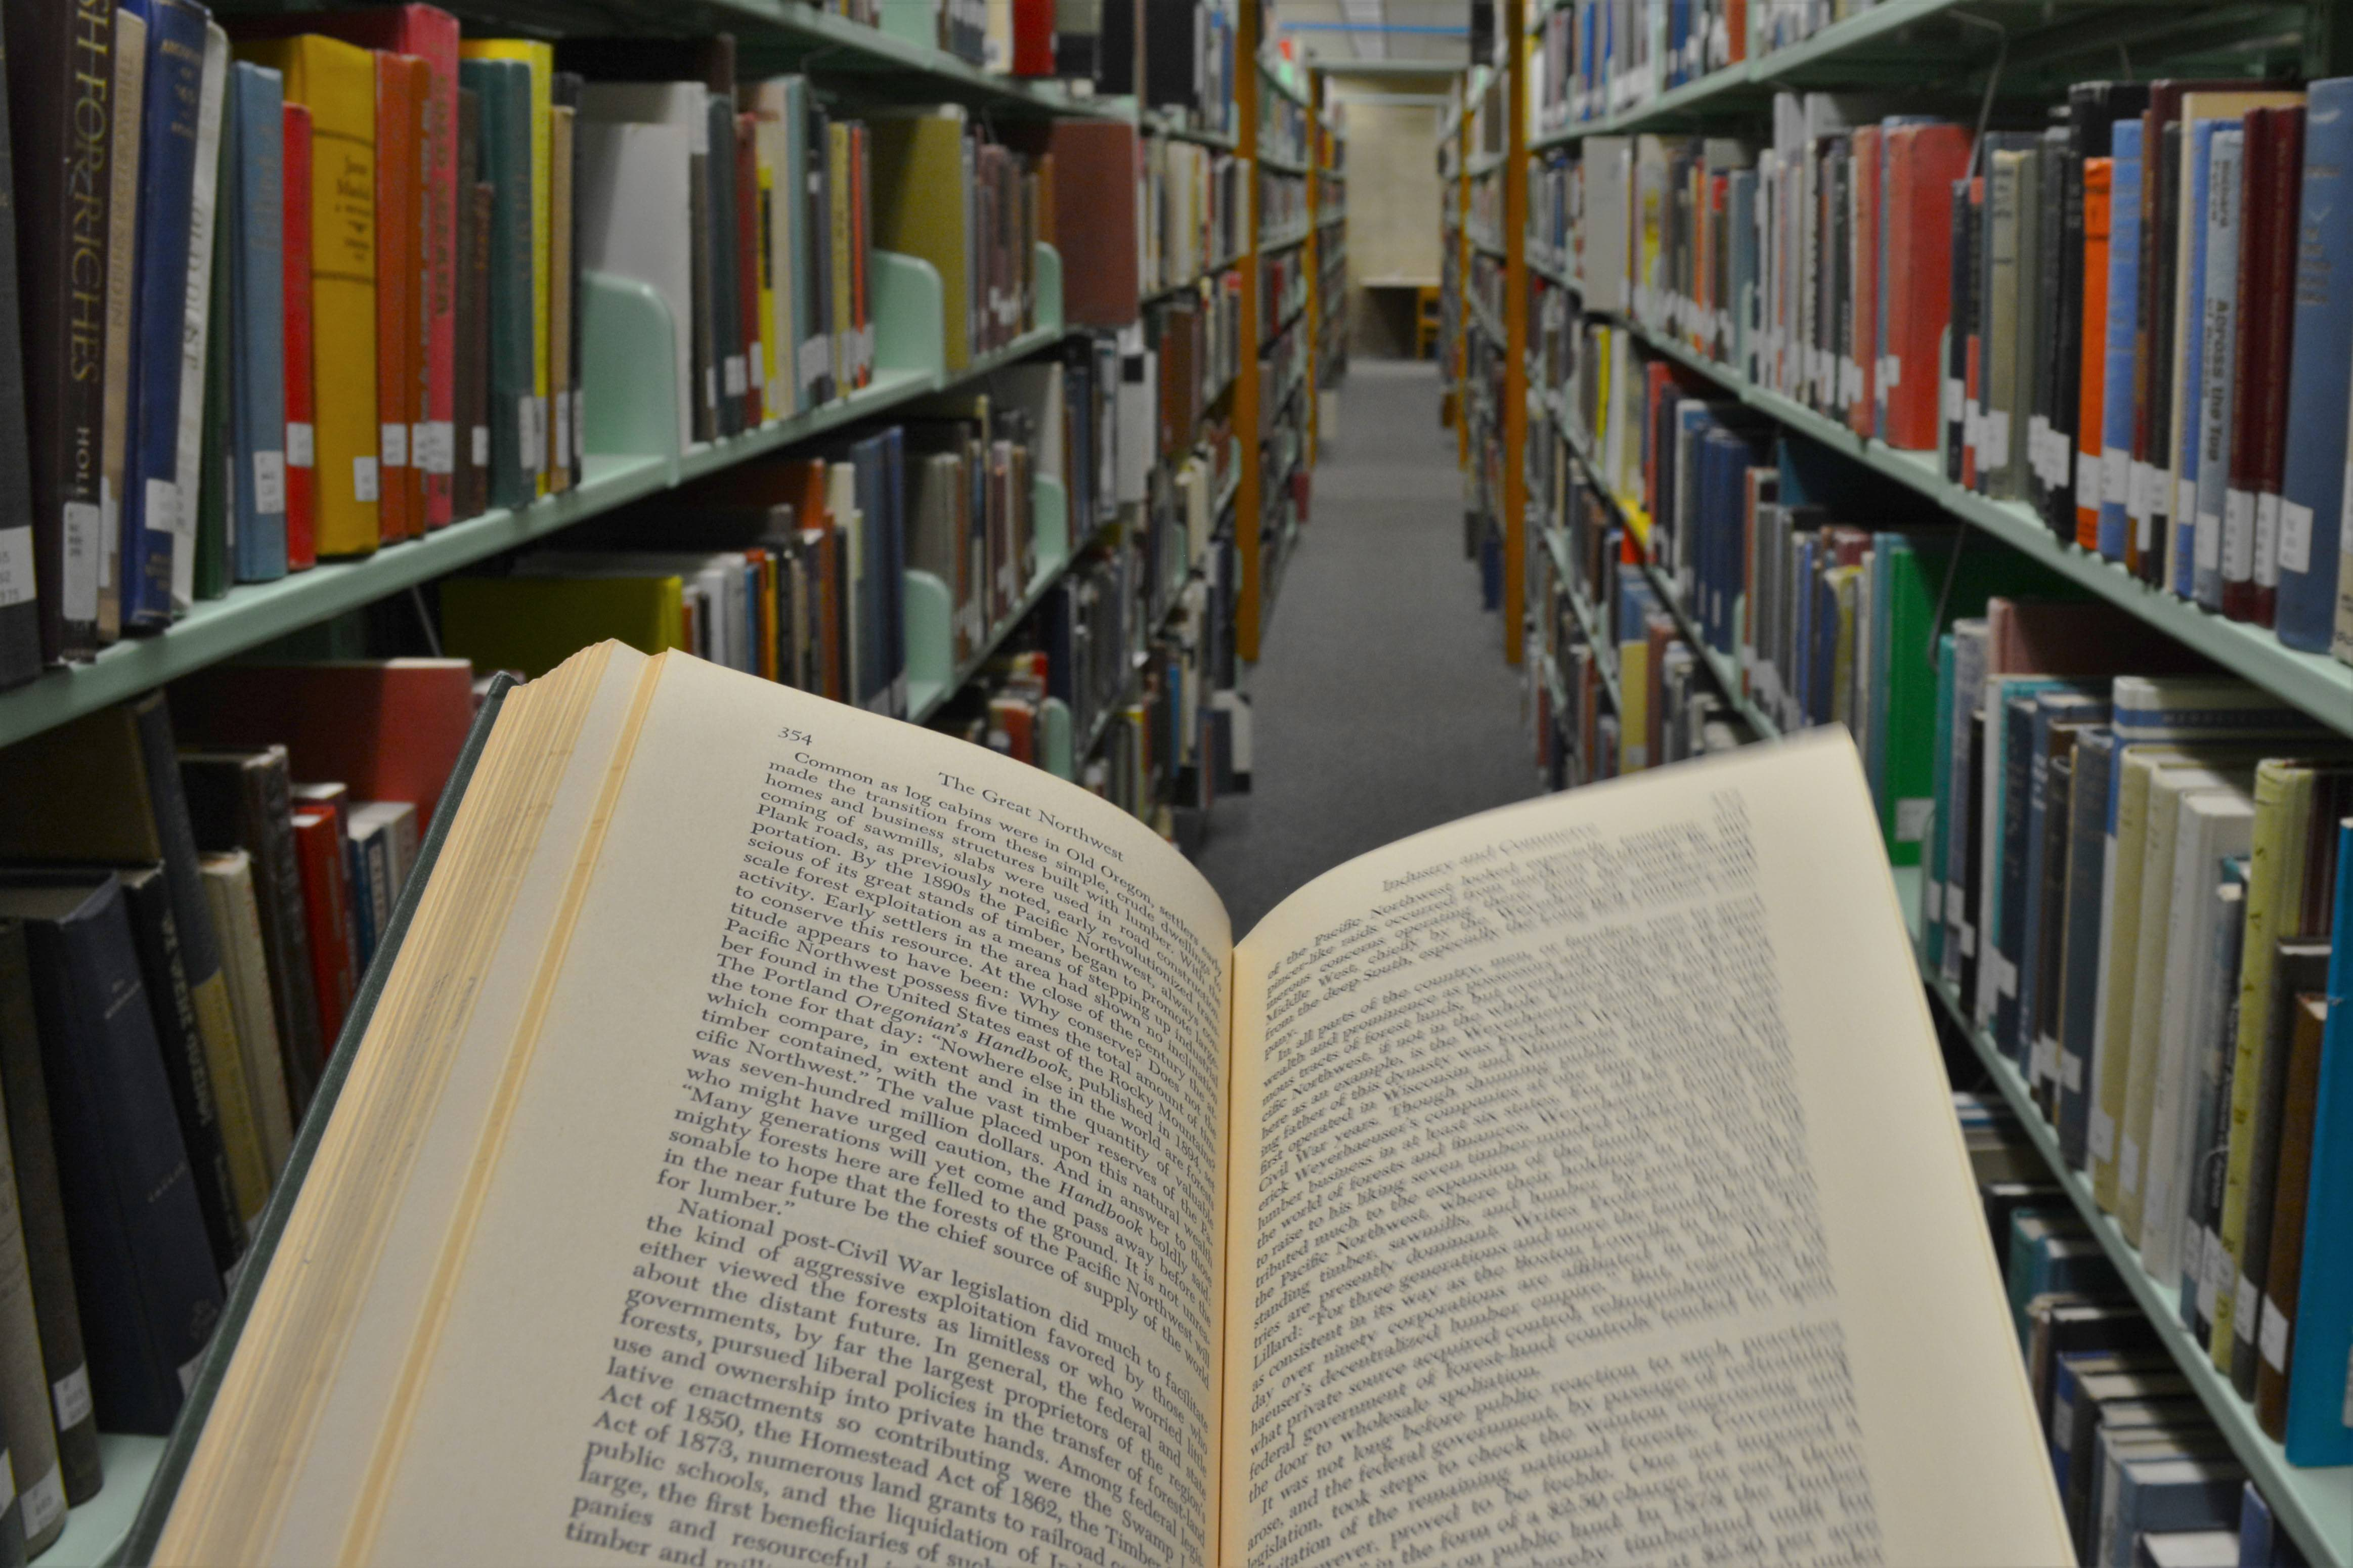 The National Endownment of Arts is sponsoring the Big Read which takes place in the Brooks Library on April 25.